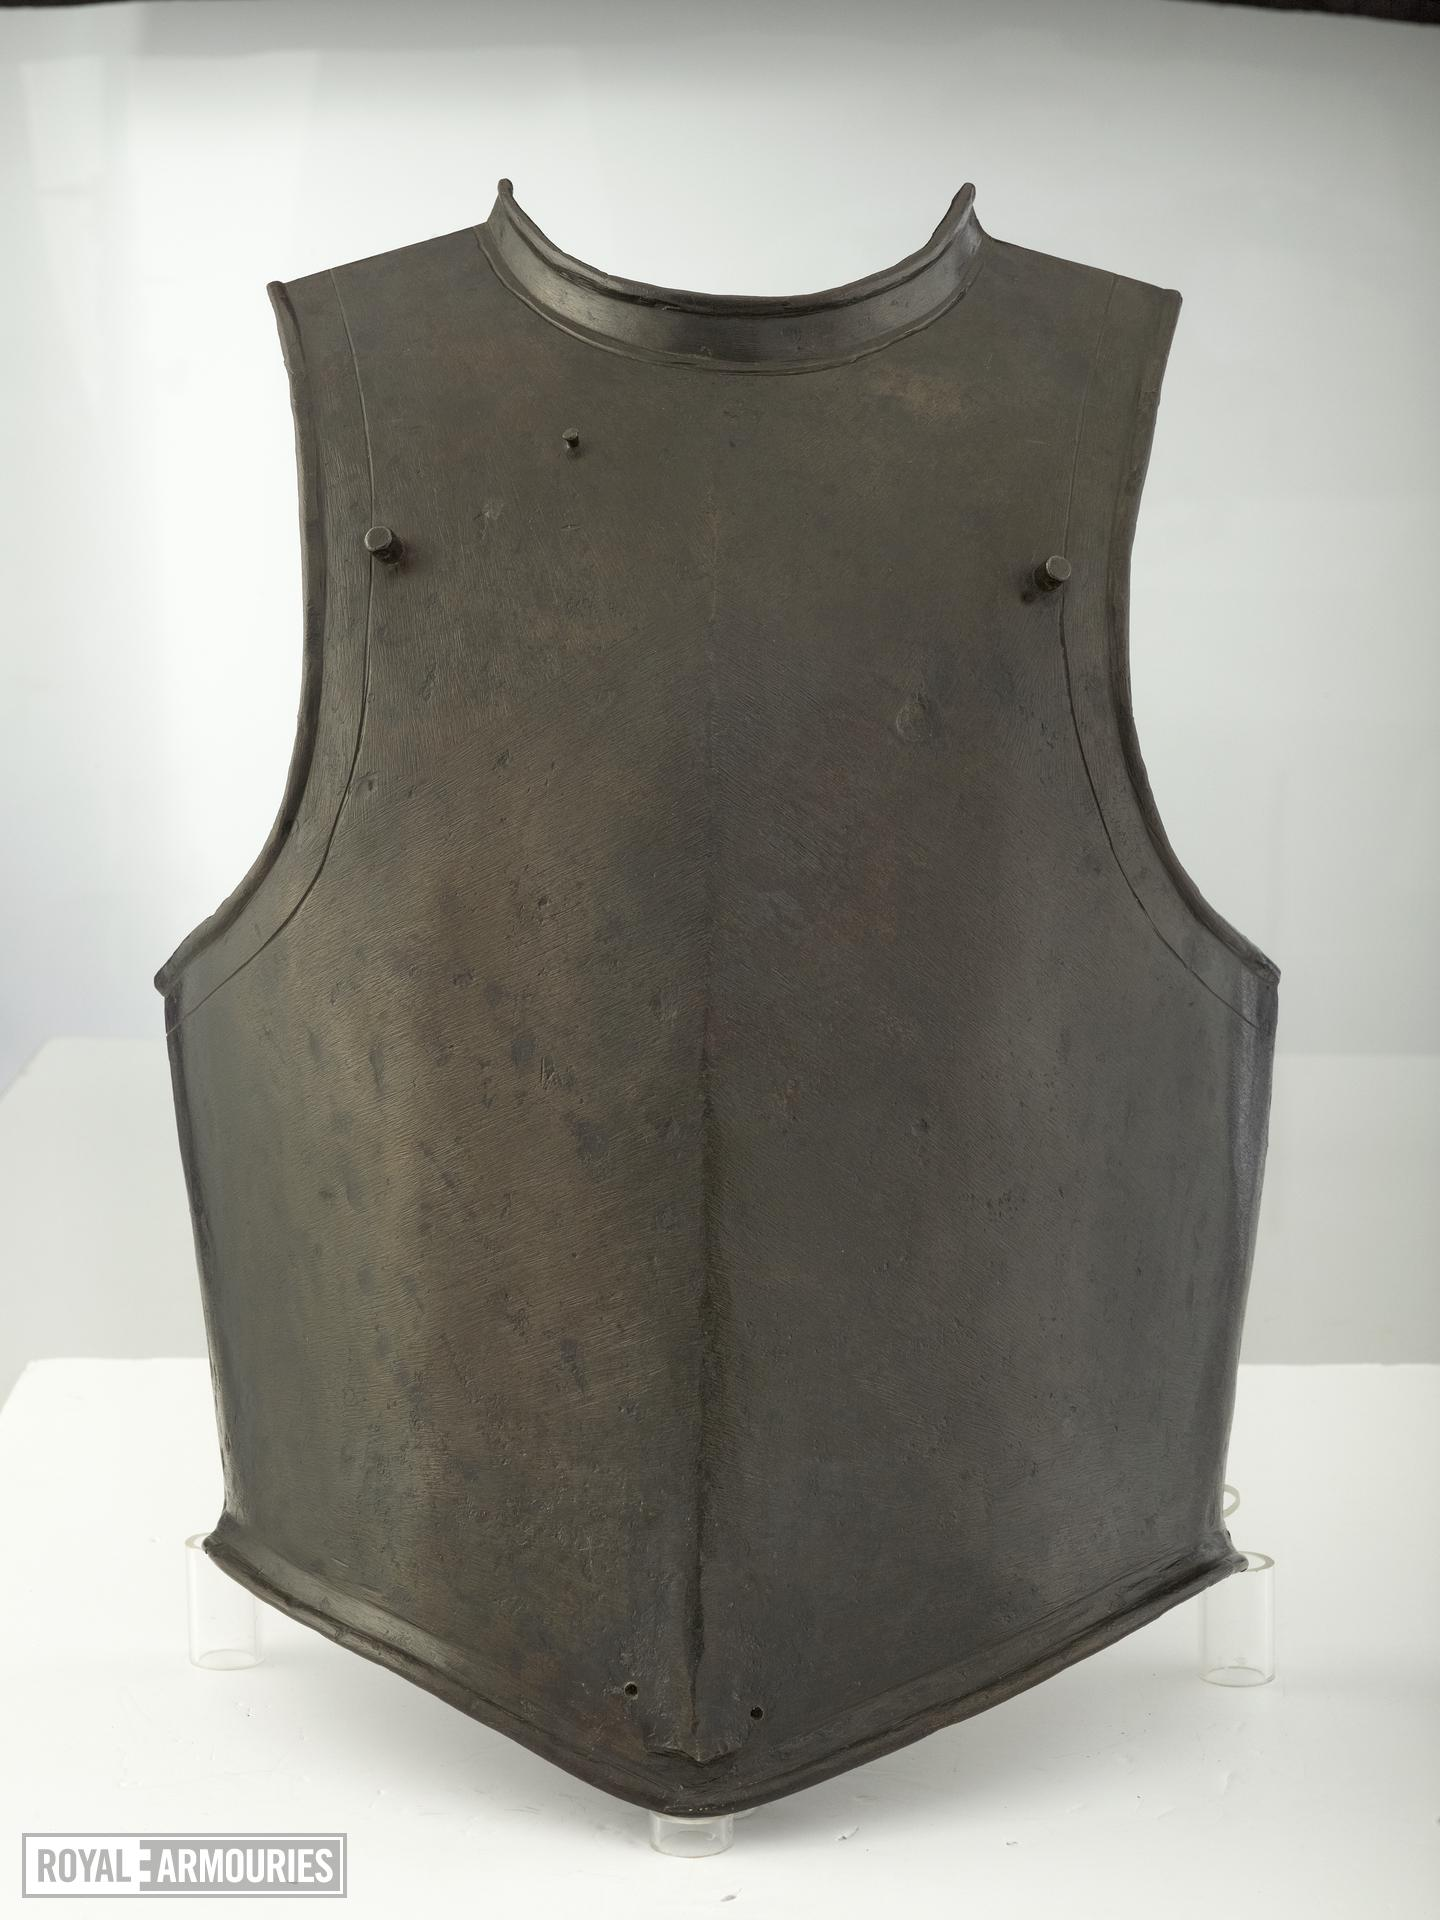 Harquebusier's breastplate